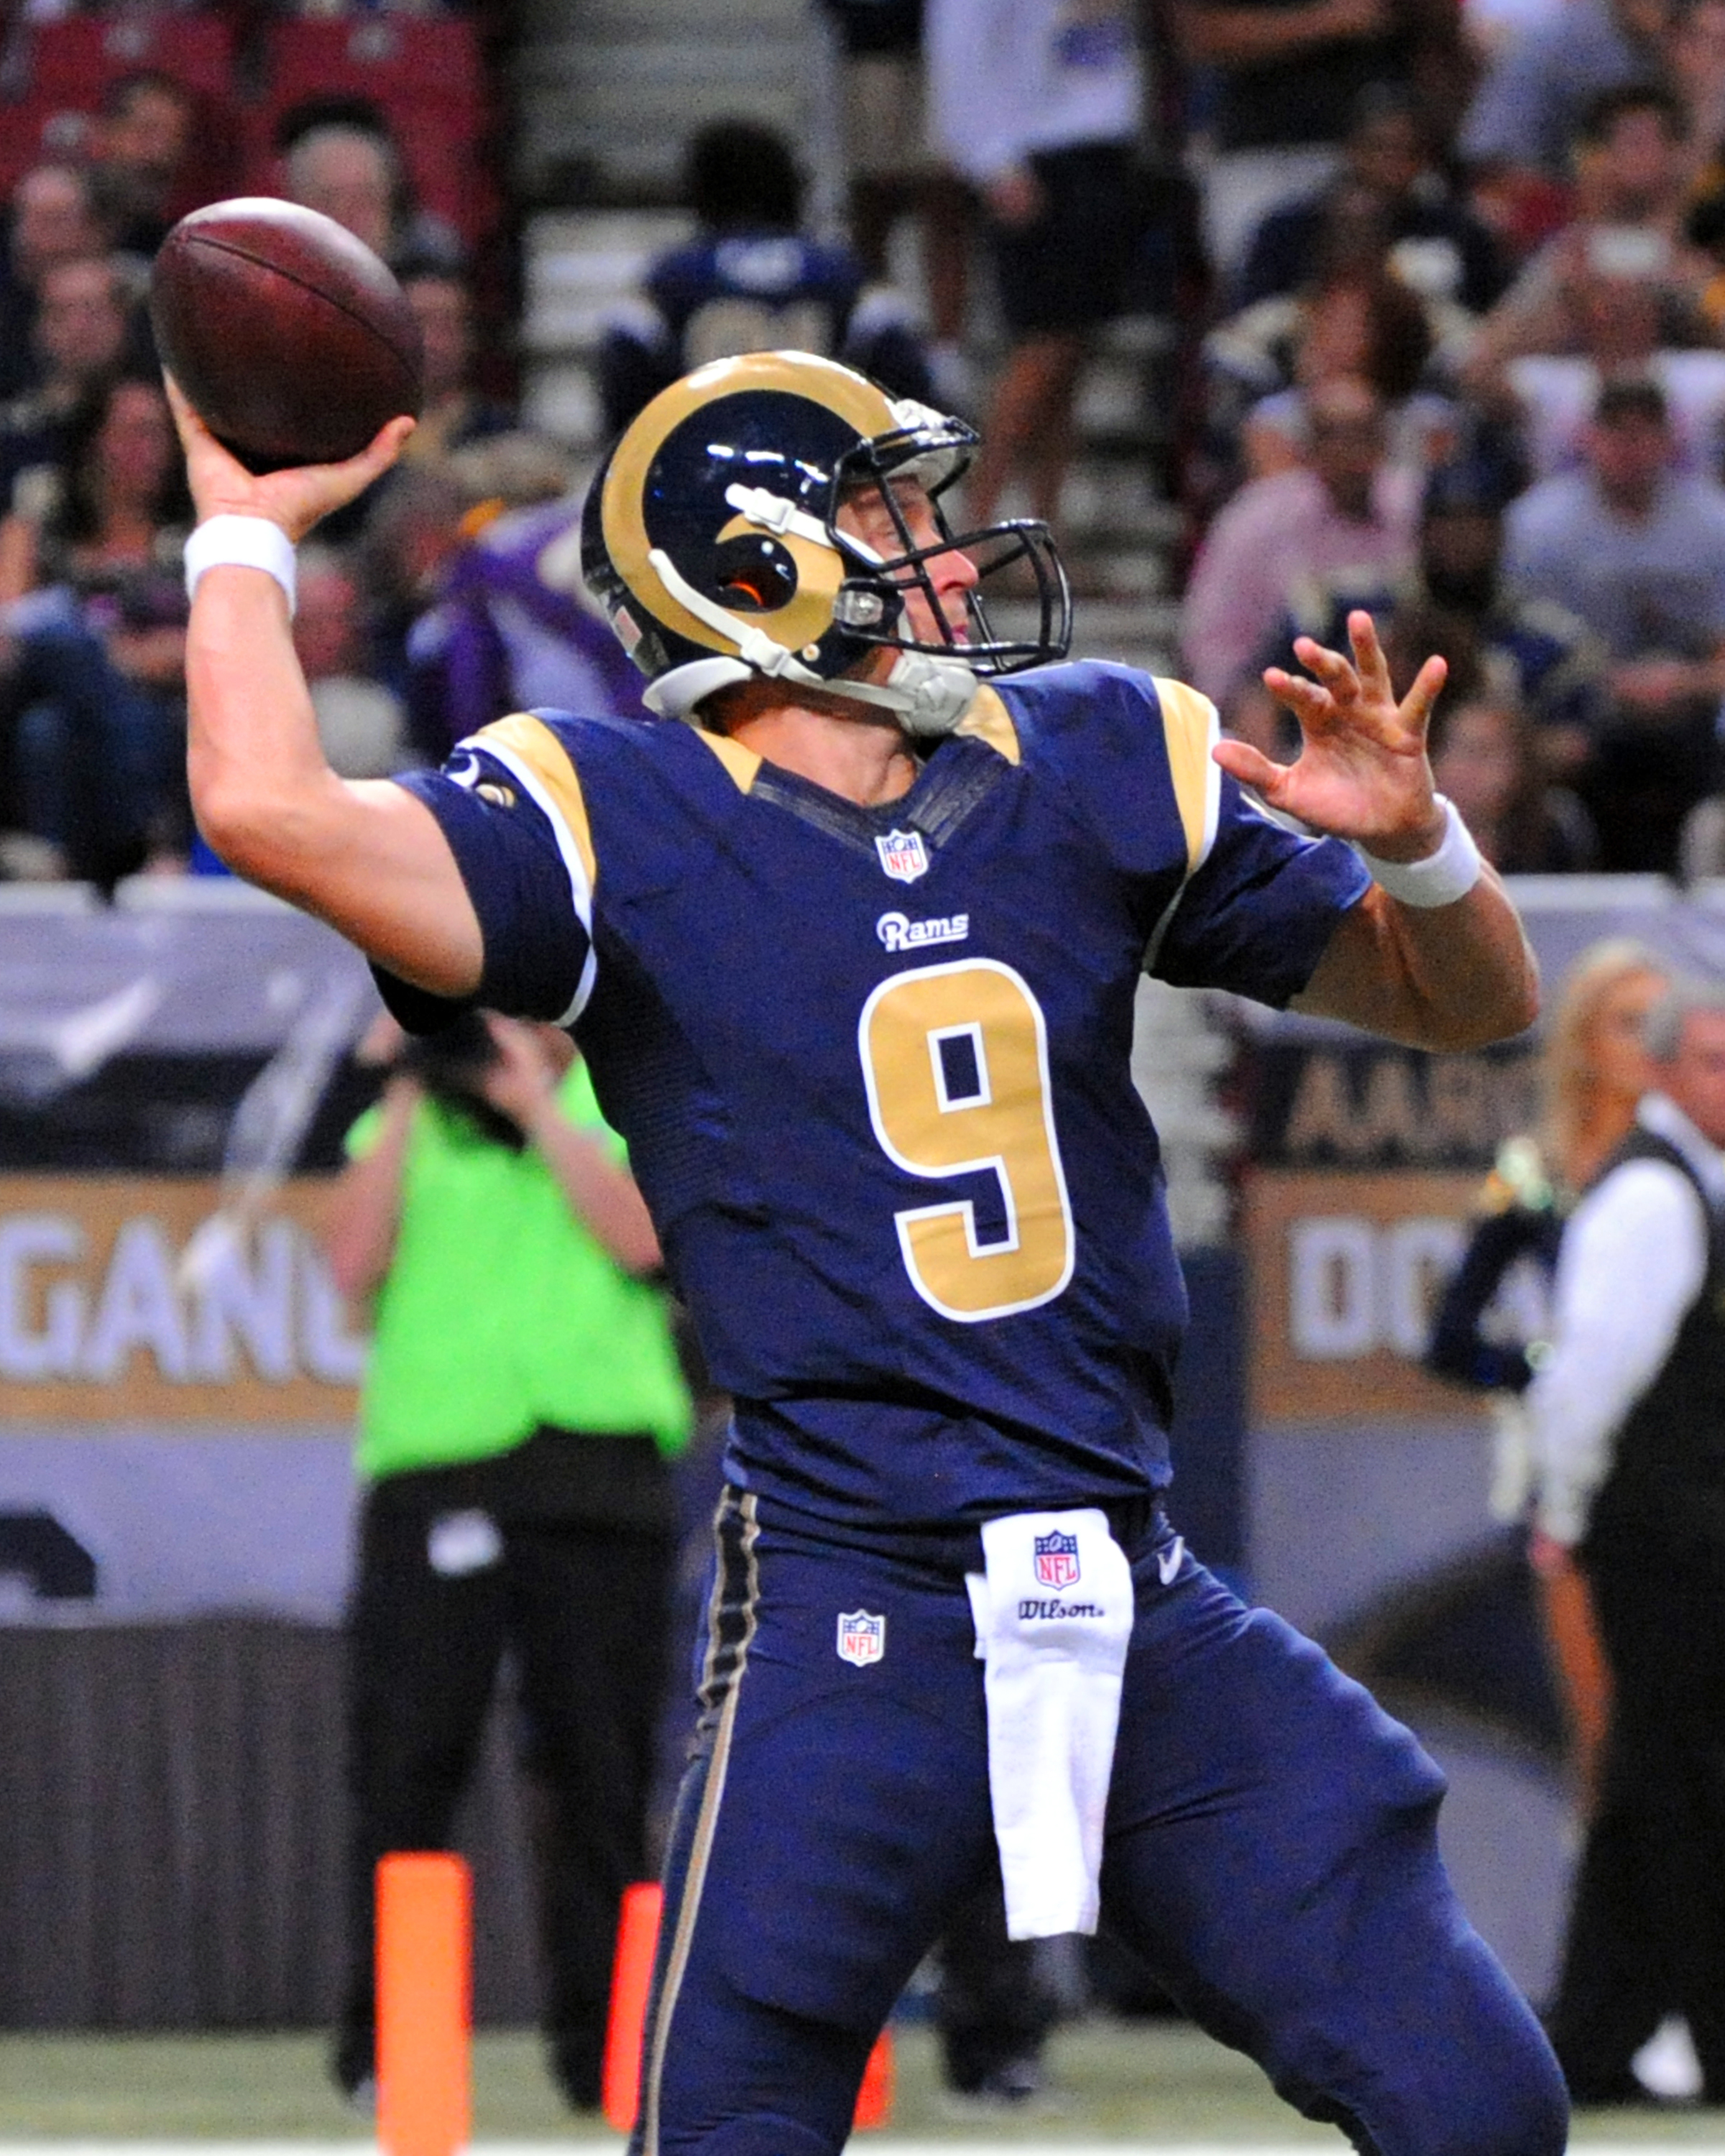 Photos: Minnesota Vikings vs. St. Louis Rams